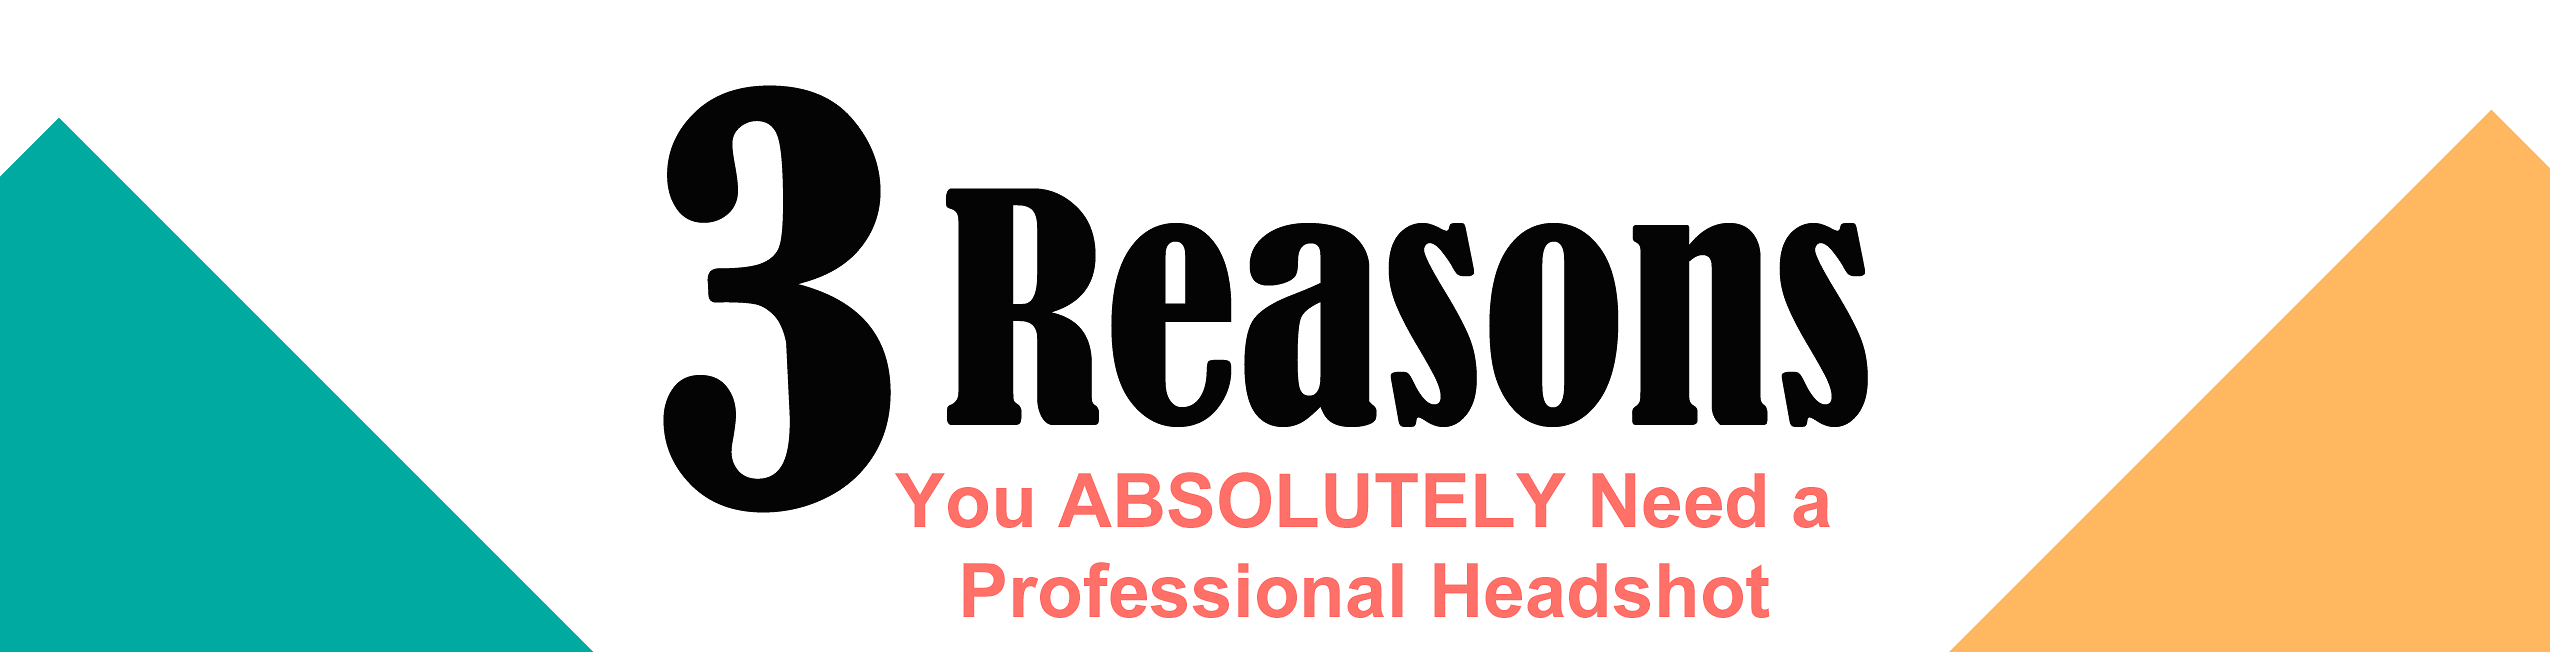 3-reasons-you-need-a-headshot-2017-featured-image